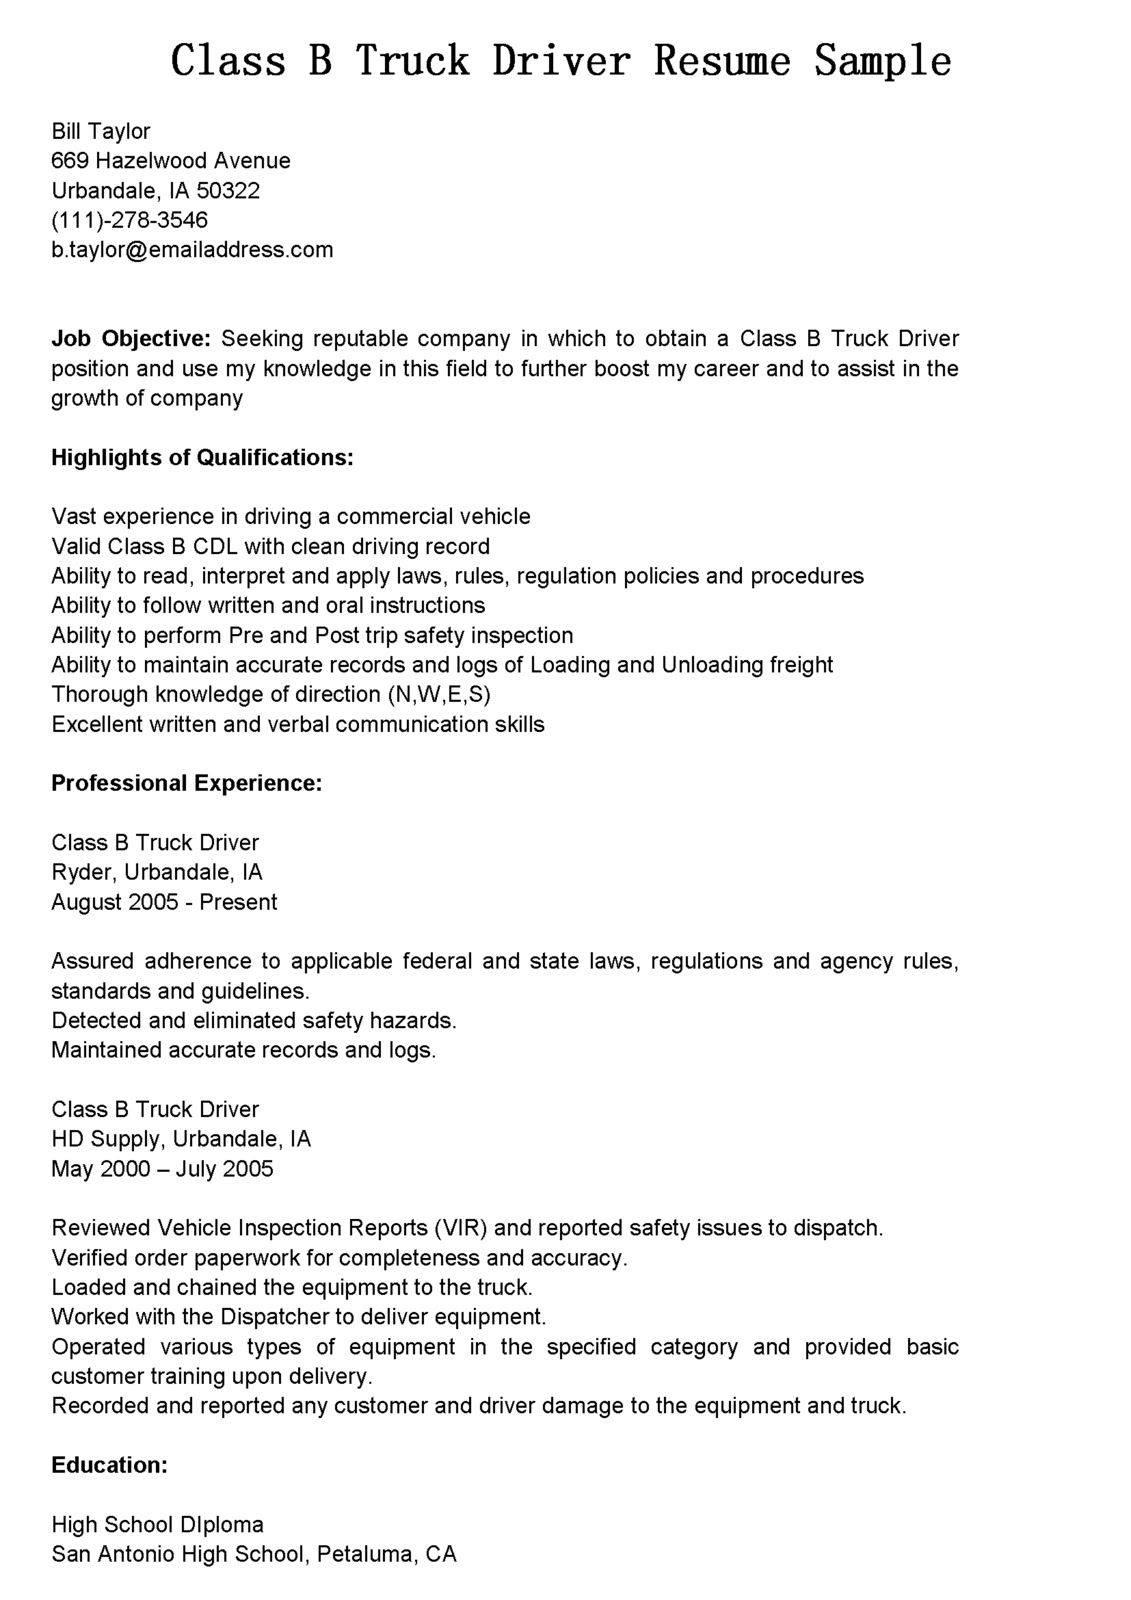 Truck Drivers Resume Sample We Provide As Reference To Make Correct And  Good Quality Resume.